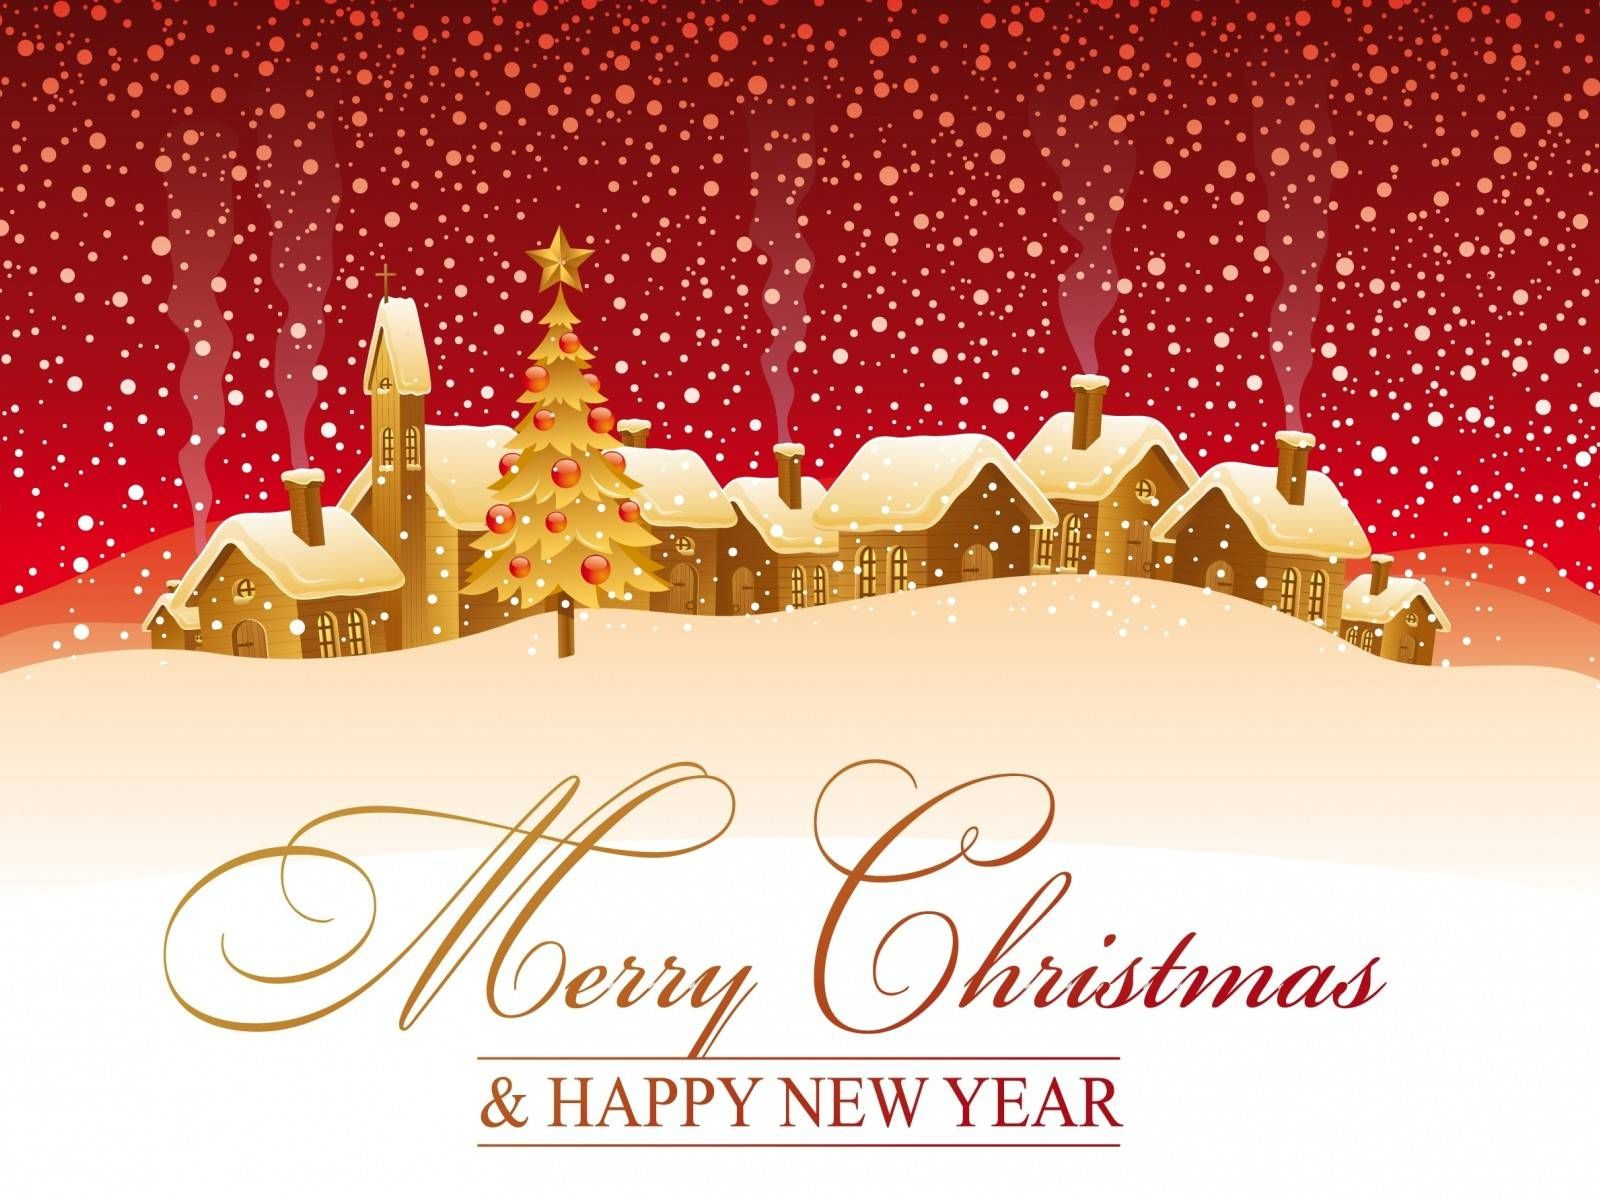 merry-christmas-wallpapers-2015-free-download   christmas